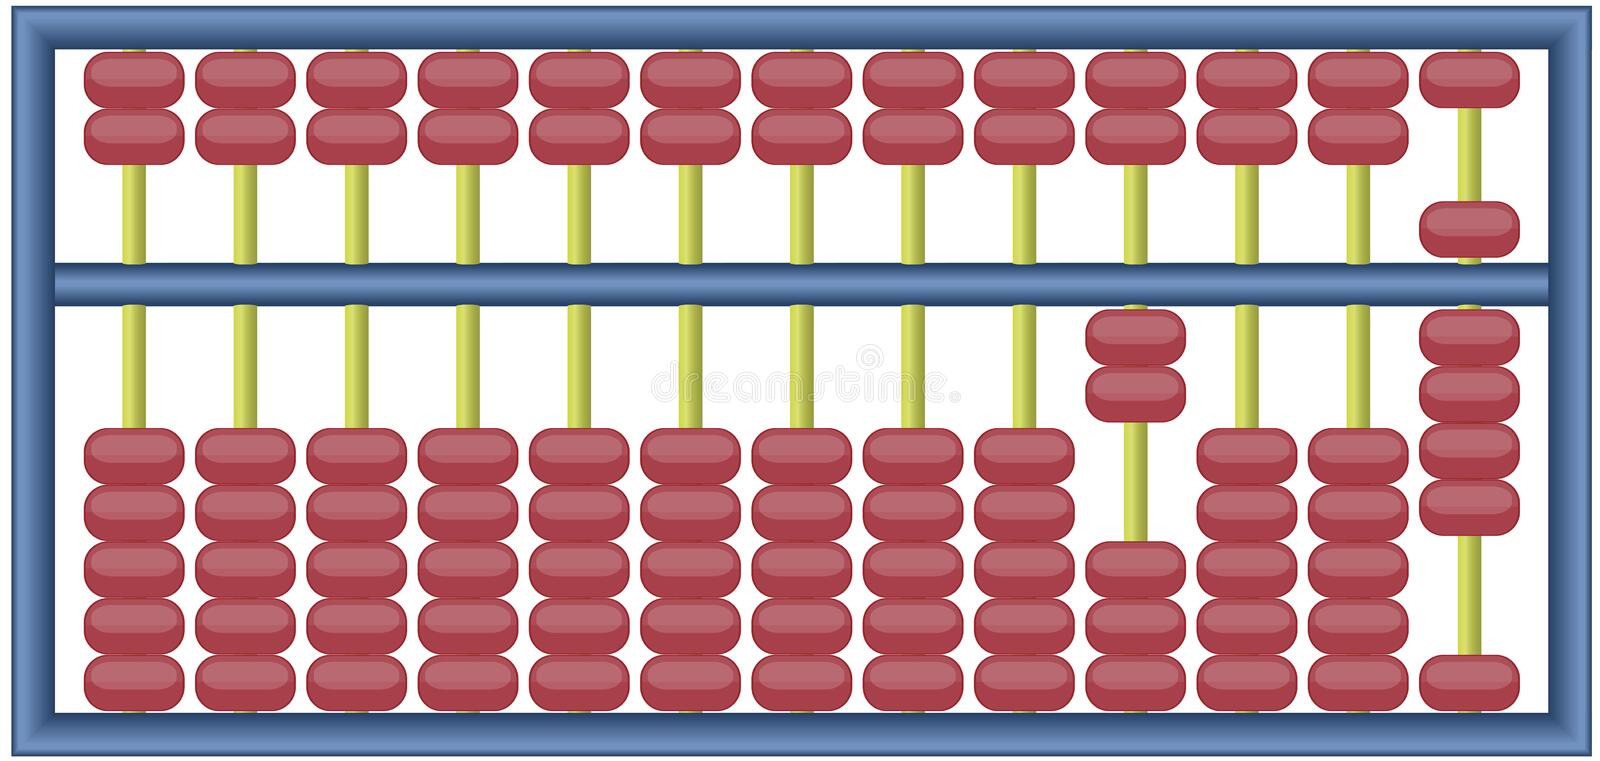 Abacus. Fully editable vector illustration of an abacus with numbers adding up to 2009 royalty free illustration